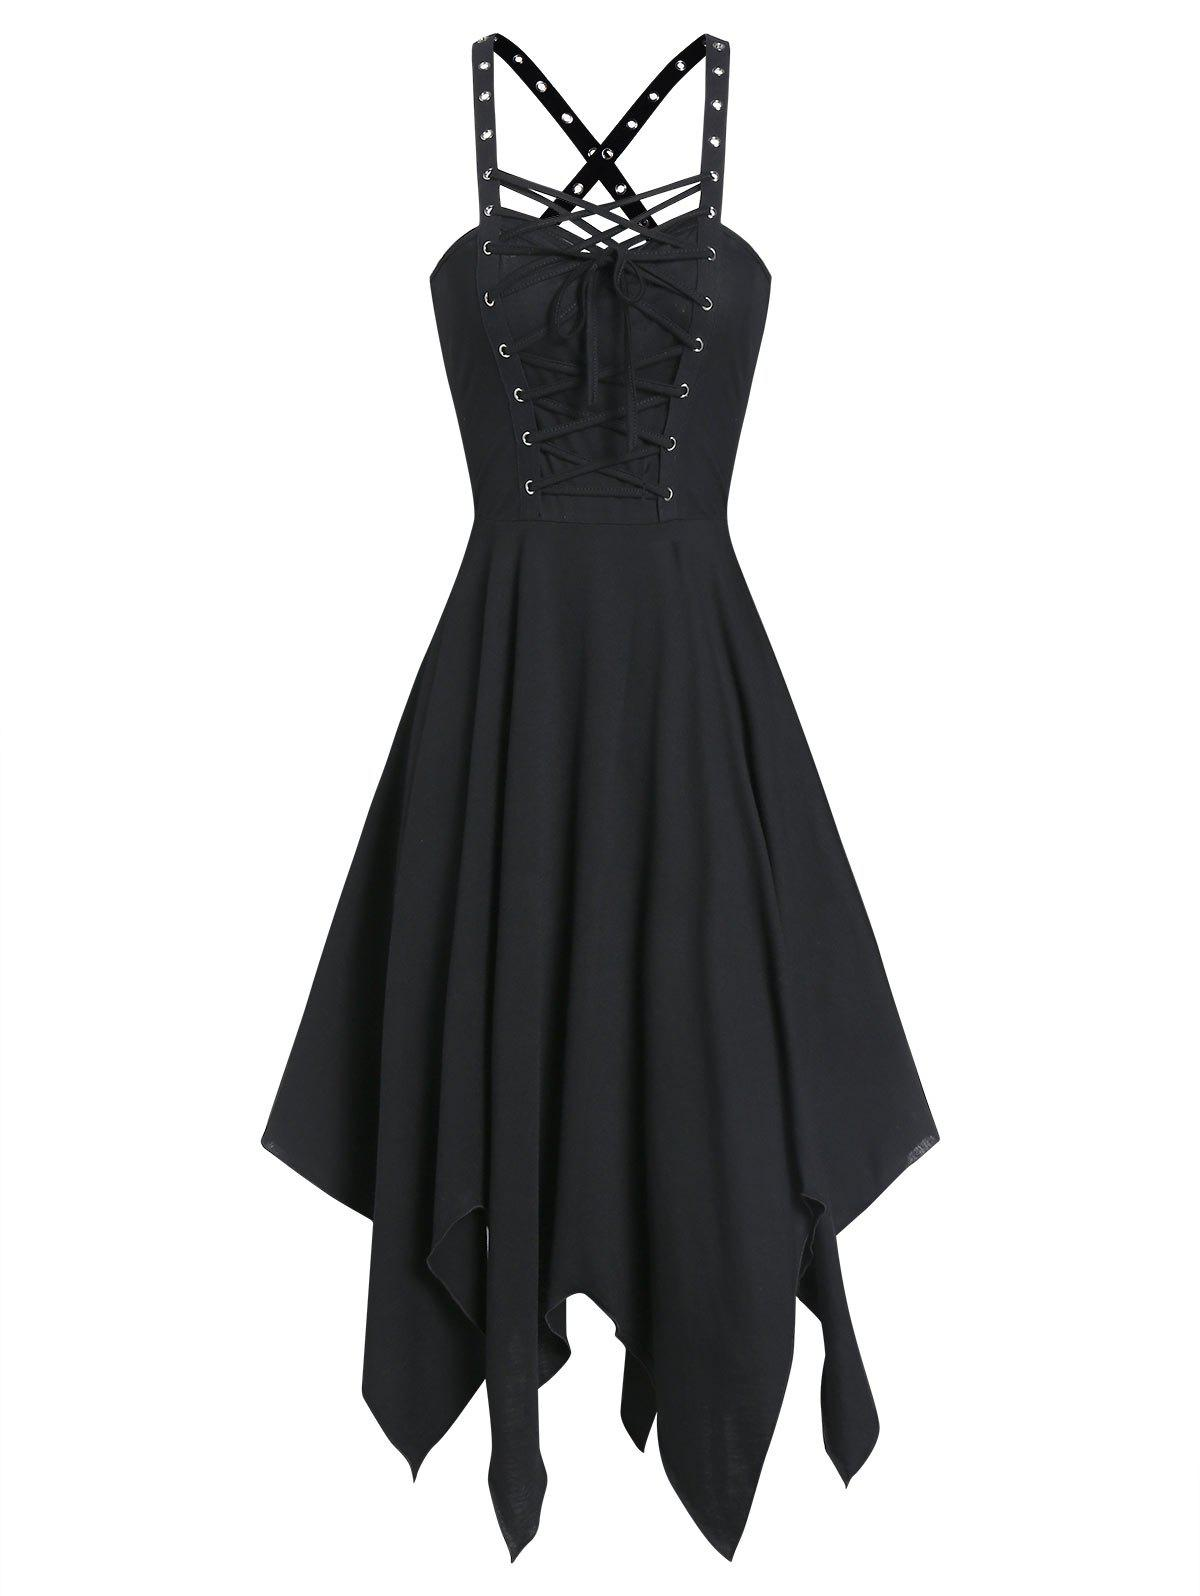 Sleeveless Lace-up Front Grommet Handkerchief Gothic Dress - BLACK 3XL